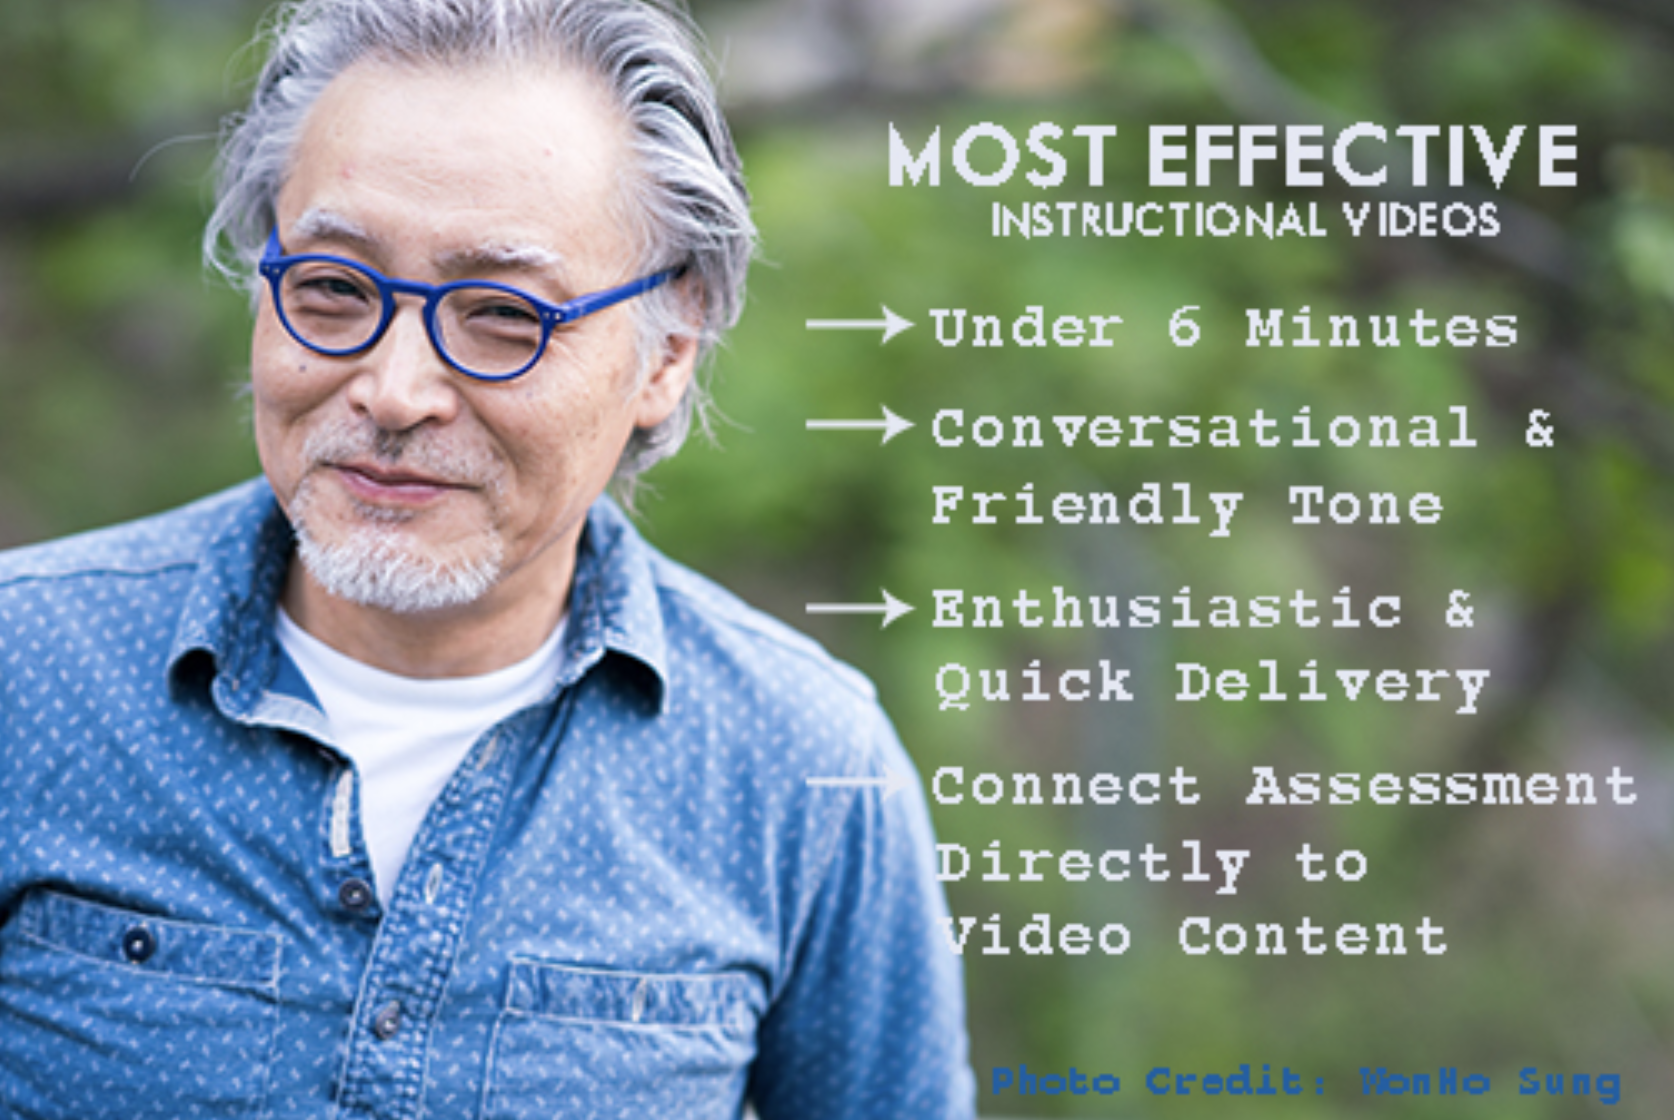 Most Effective Instructional Videos Infographic